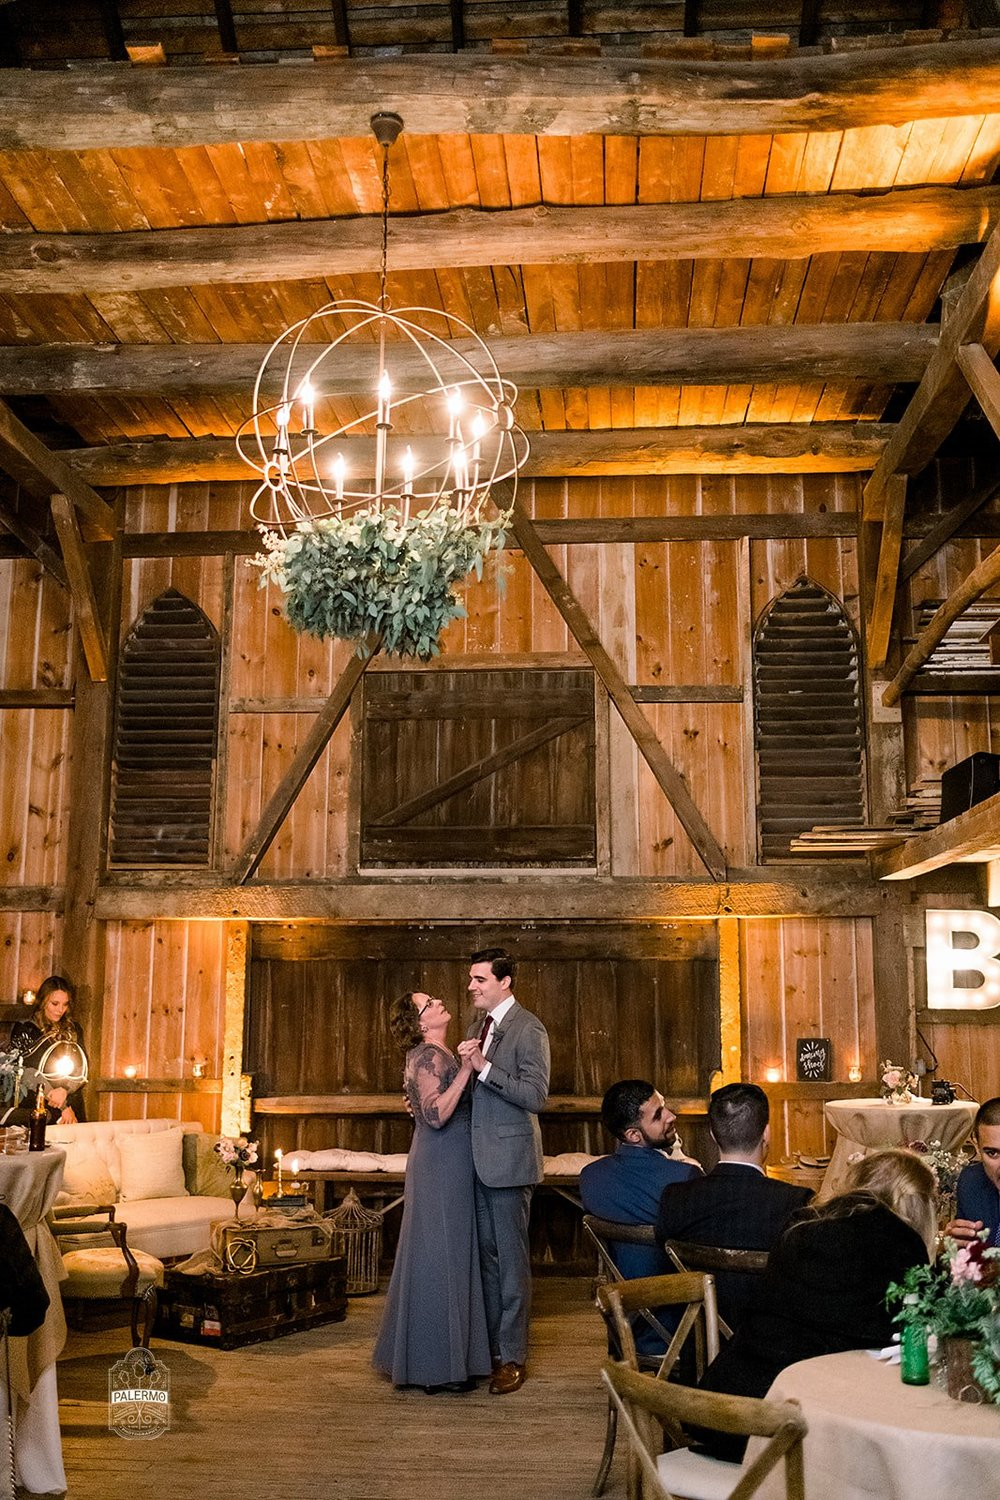 Mother/son dance for fall barn wedding in Pittsburgh, PA planned by Exhale Events. Find more wedding inspiration at exhale-events.com!